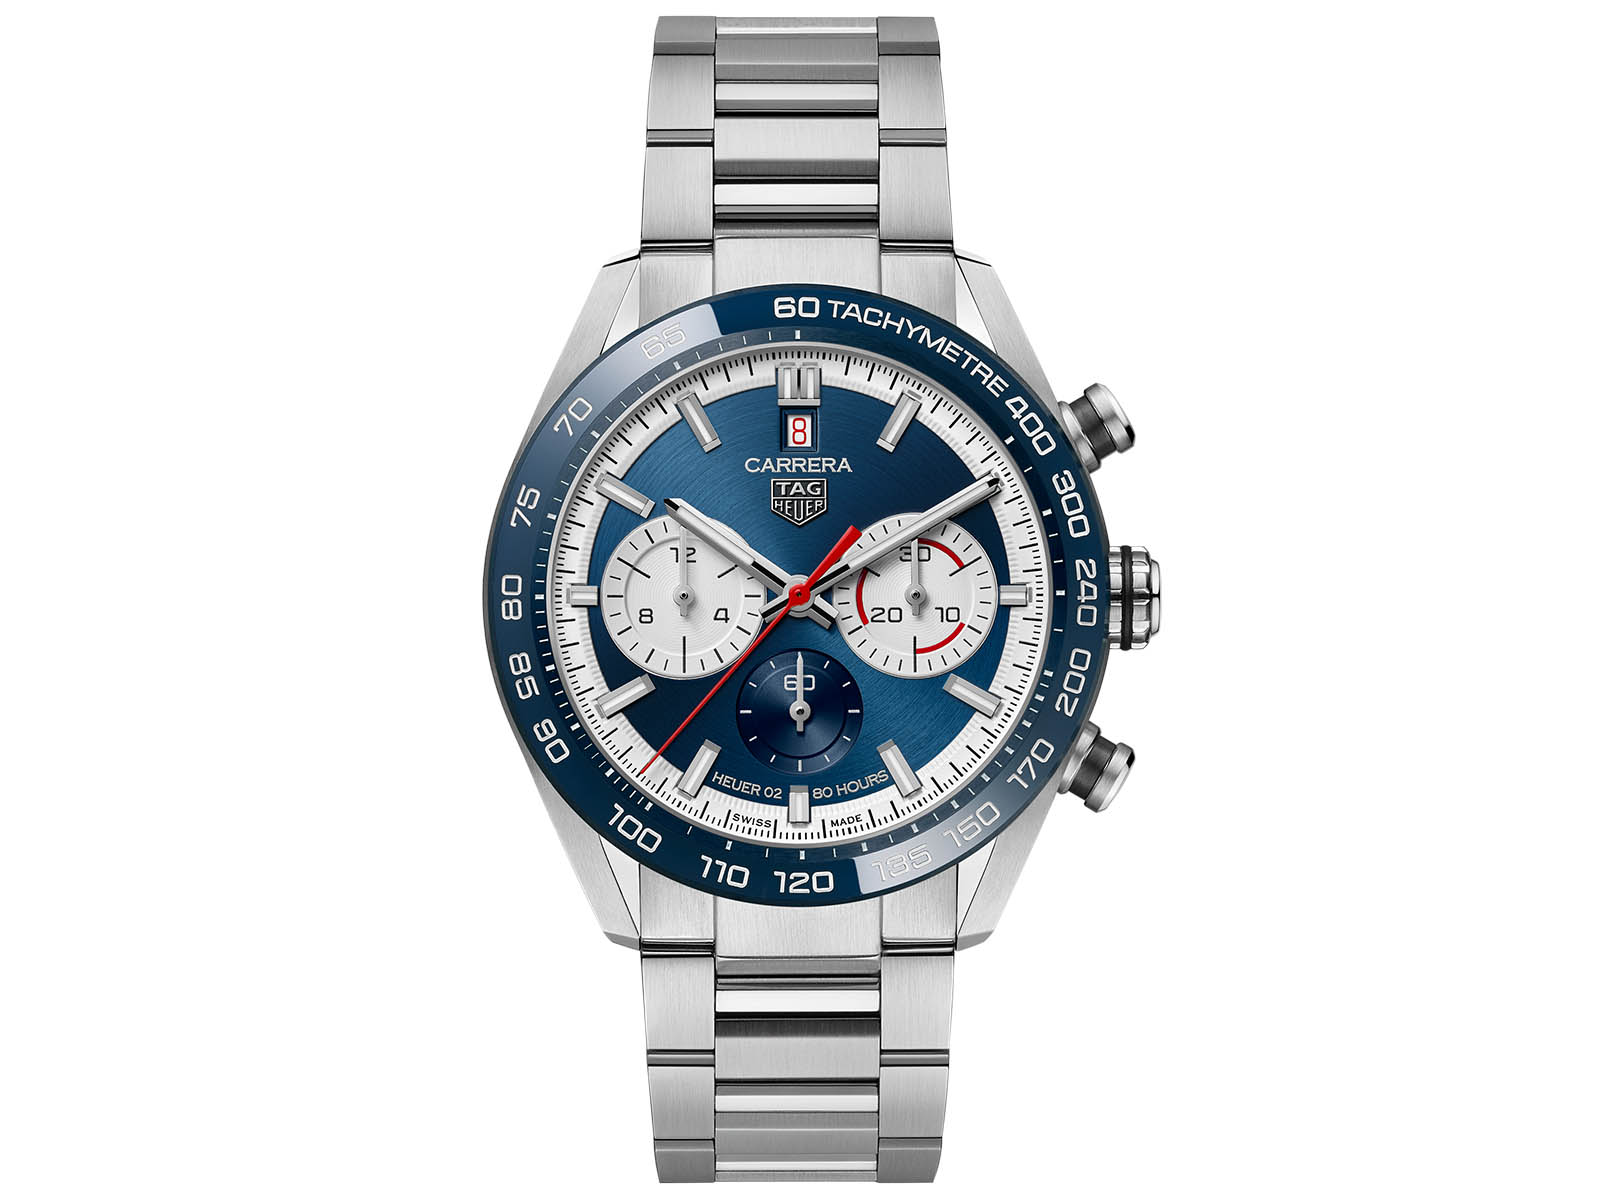 cbn2a1e-ba0643-tag-heuer-carrera-sport-chronograph-160-years-special-edition-3.jpg